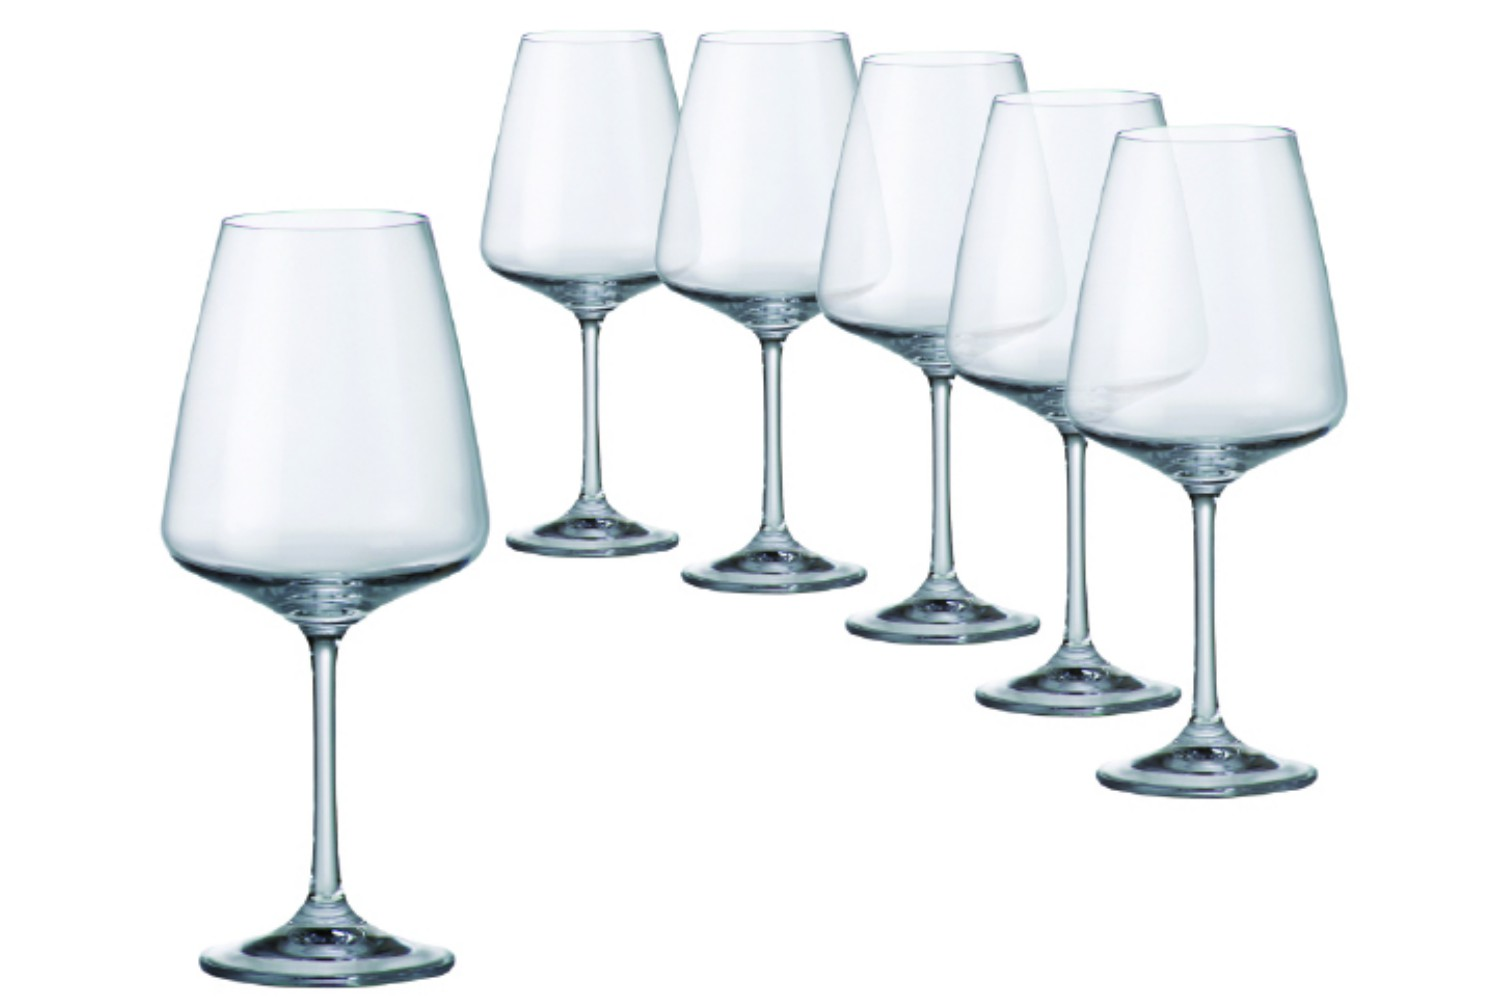 High End Crystal Wine Glasses Tipperary Crystal Sapphire Wine Glasses 450ml Set Of 6